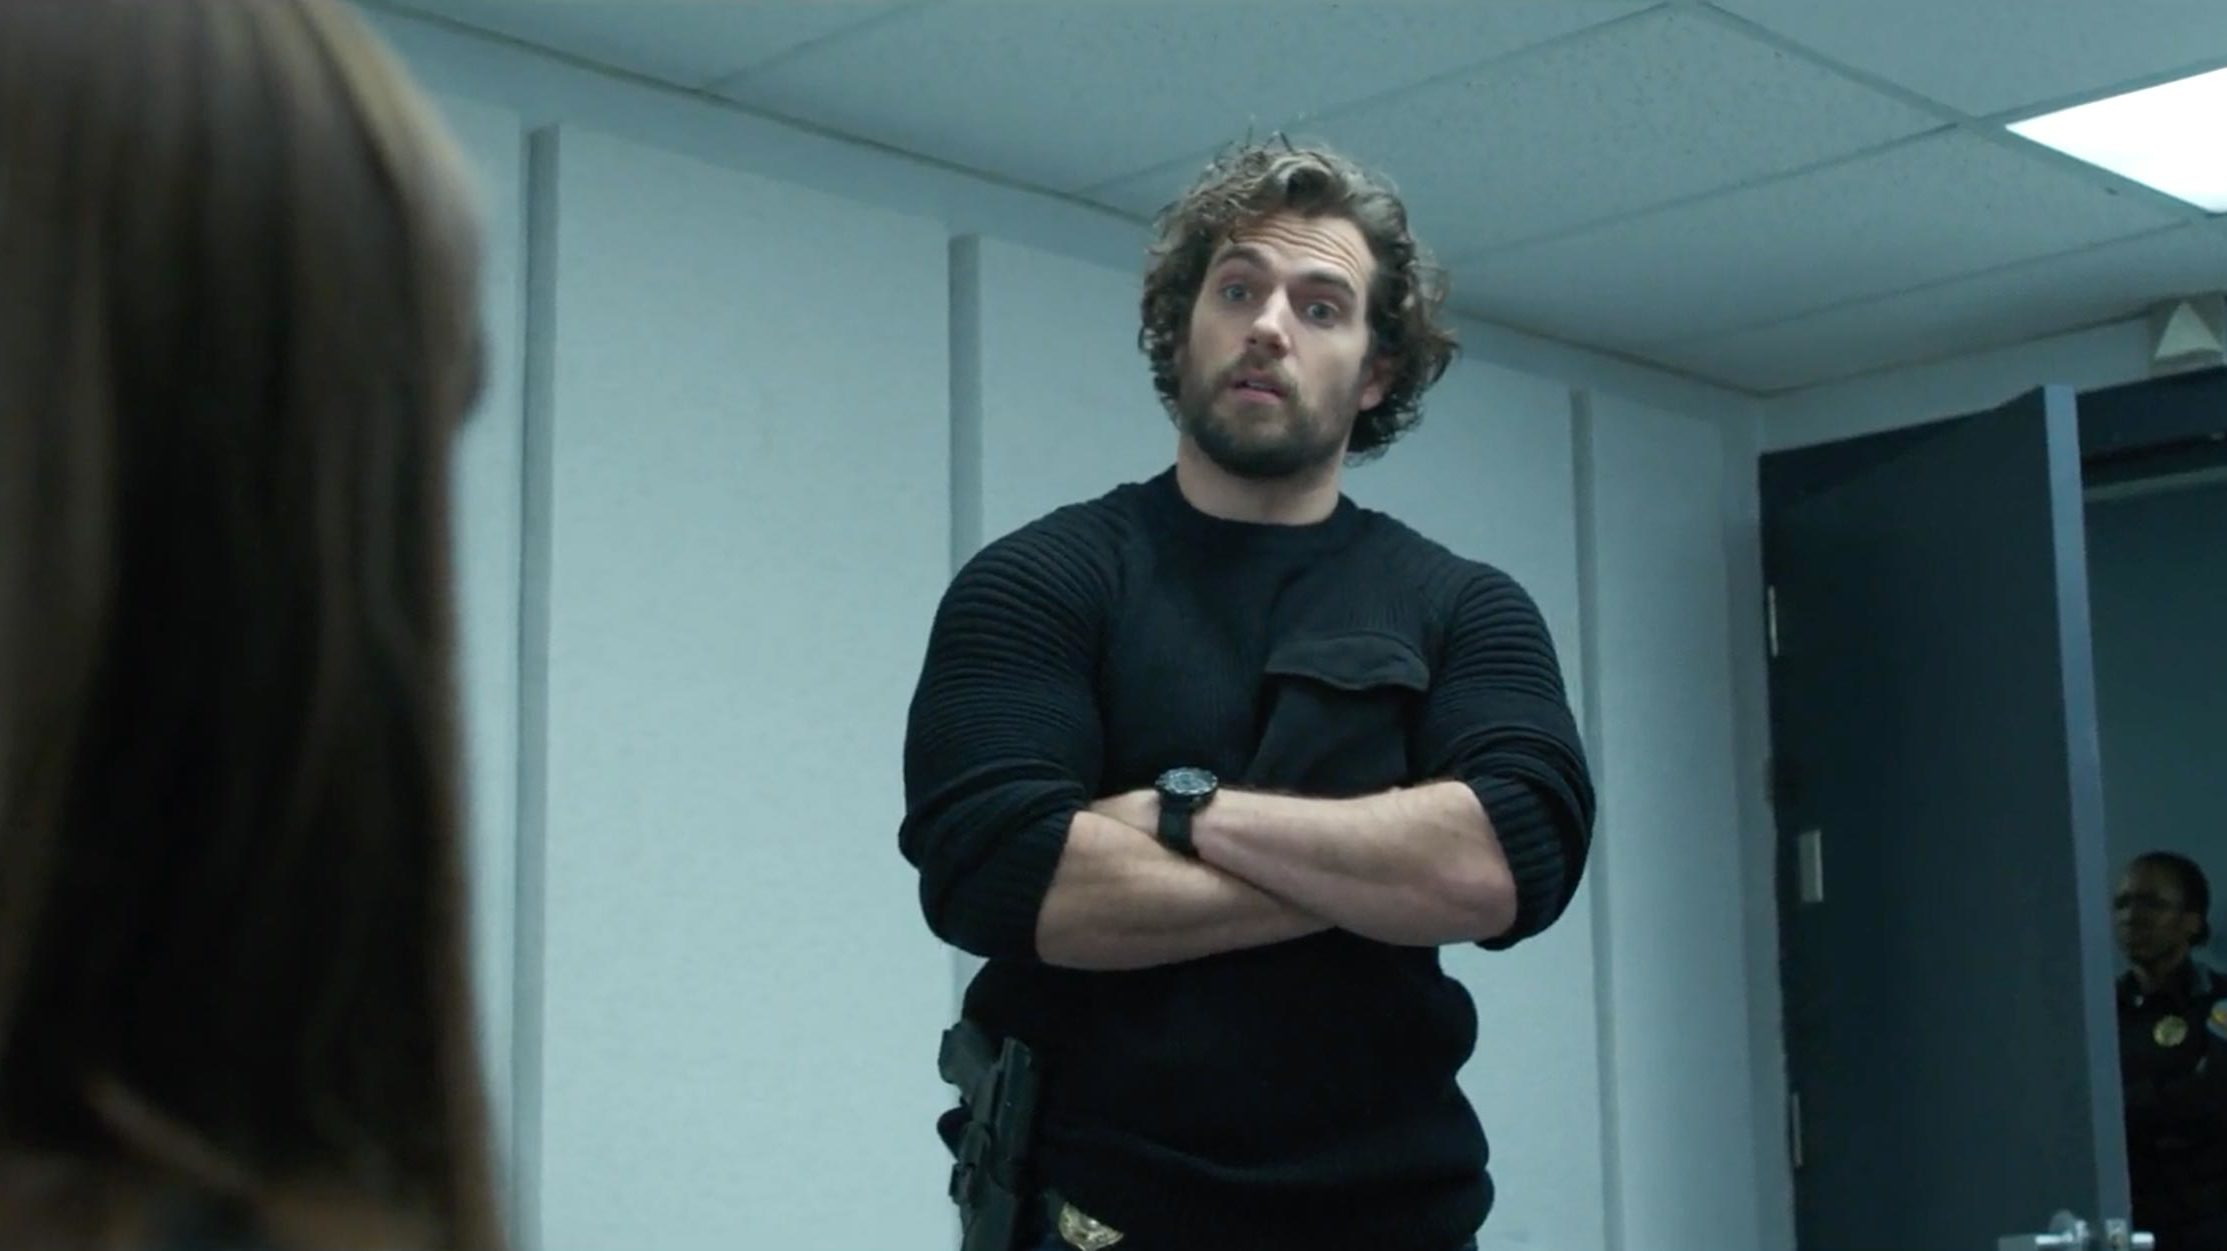 Night Hunter: Trailer out now, starring Alexandria Daddario and Henry Cavill